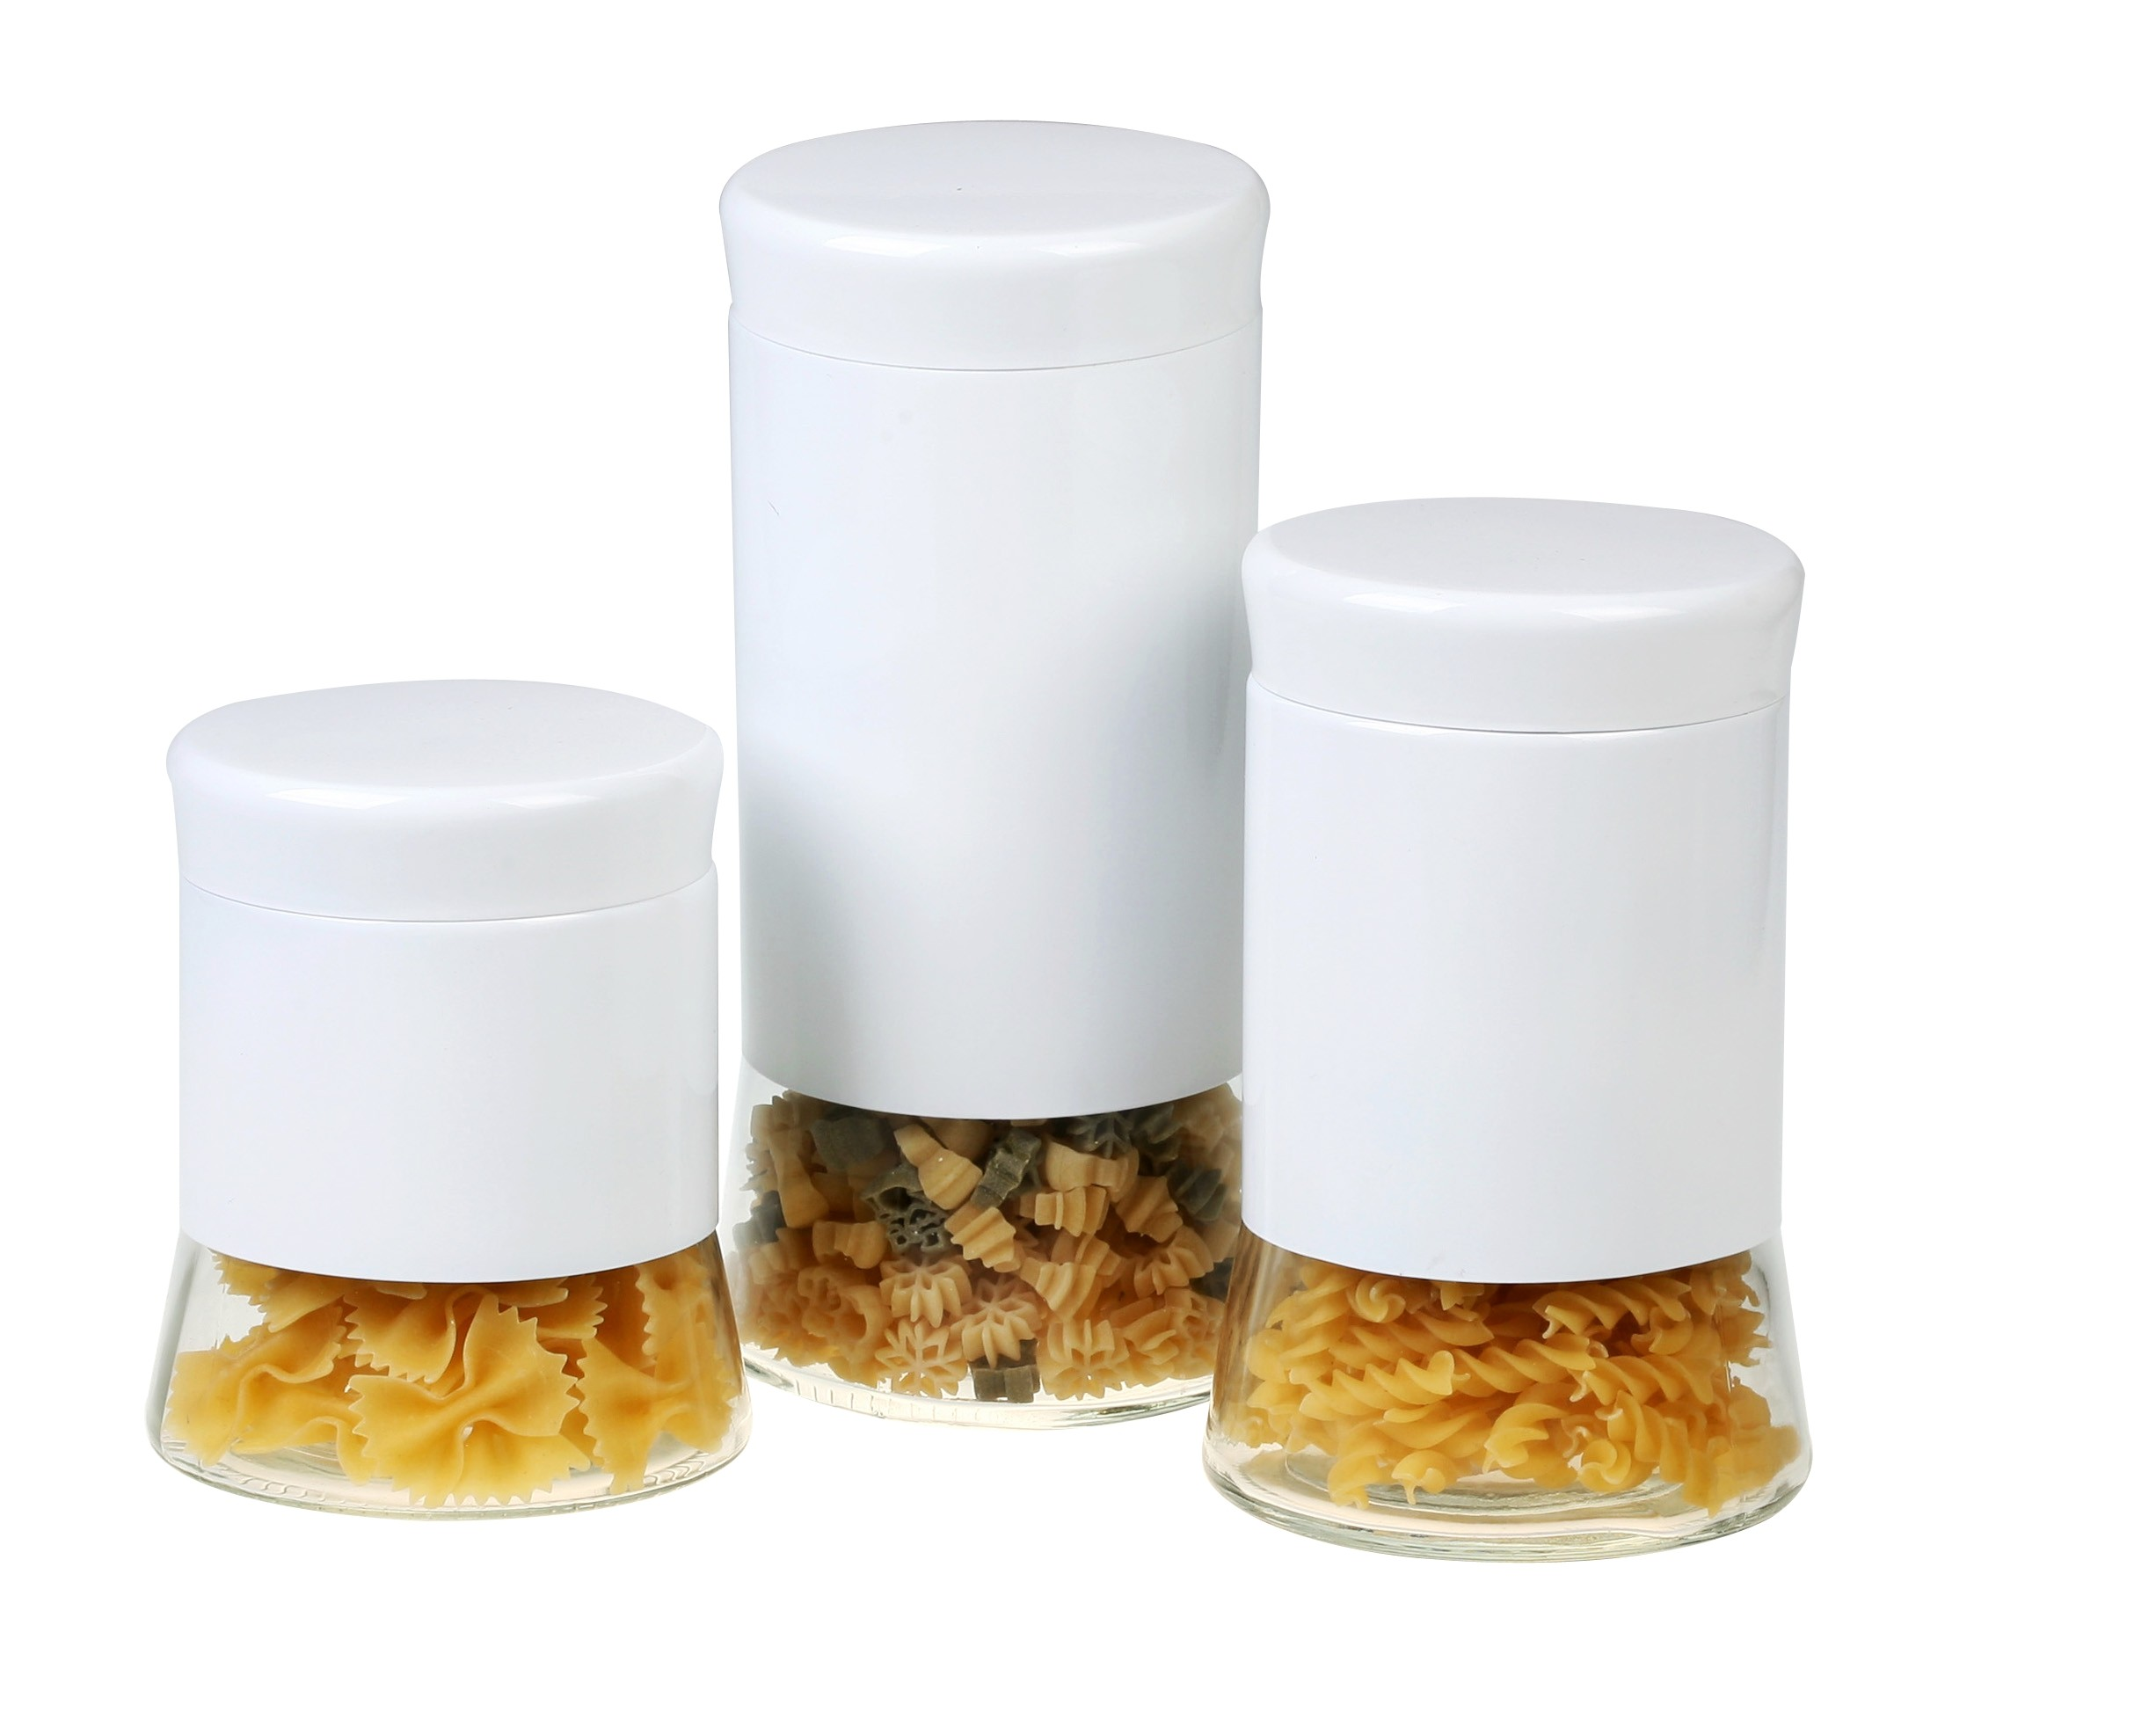 GBS3022 Flairs 4 piece White Canister Set